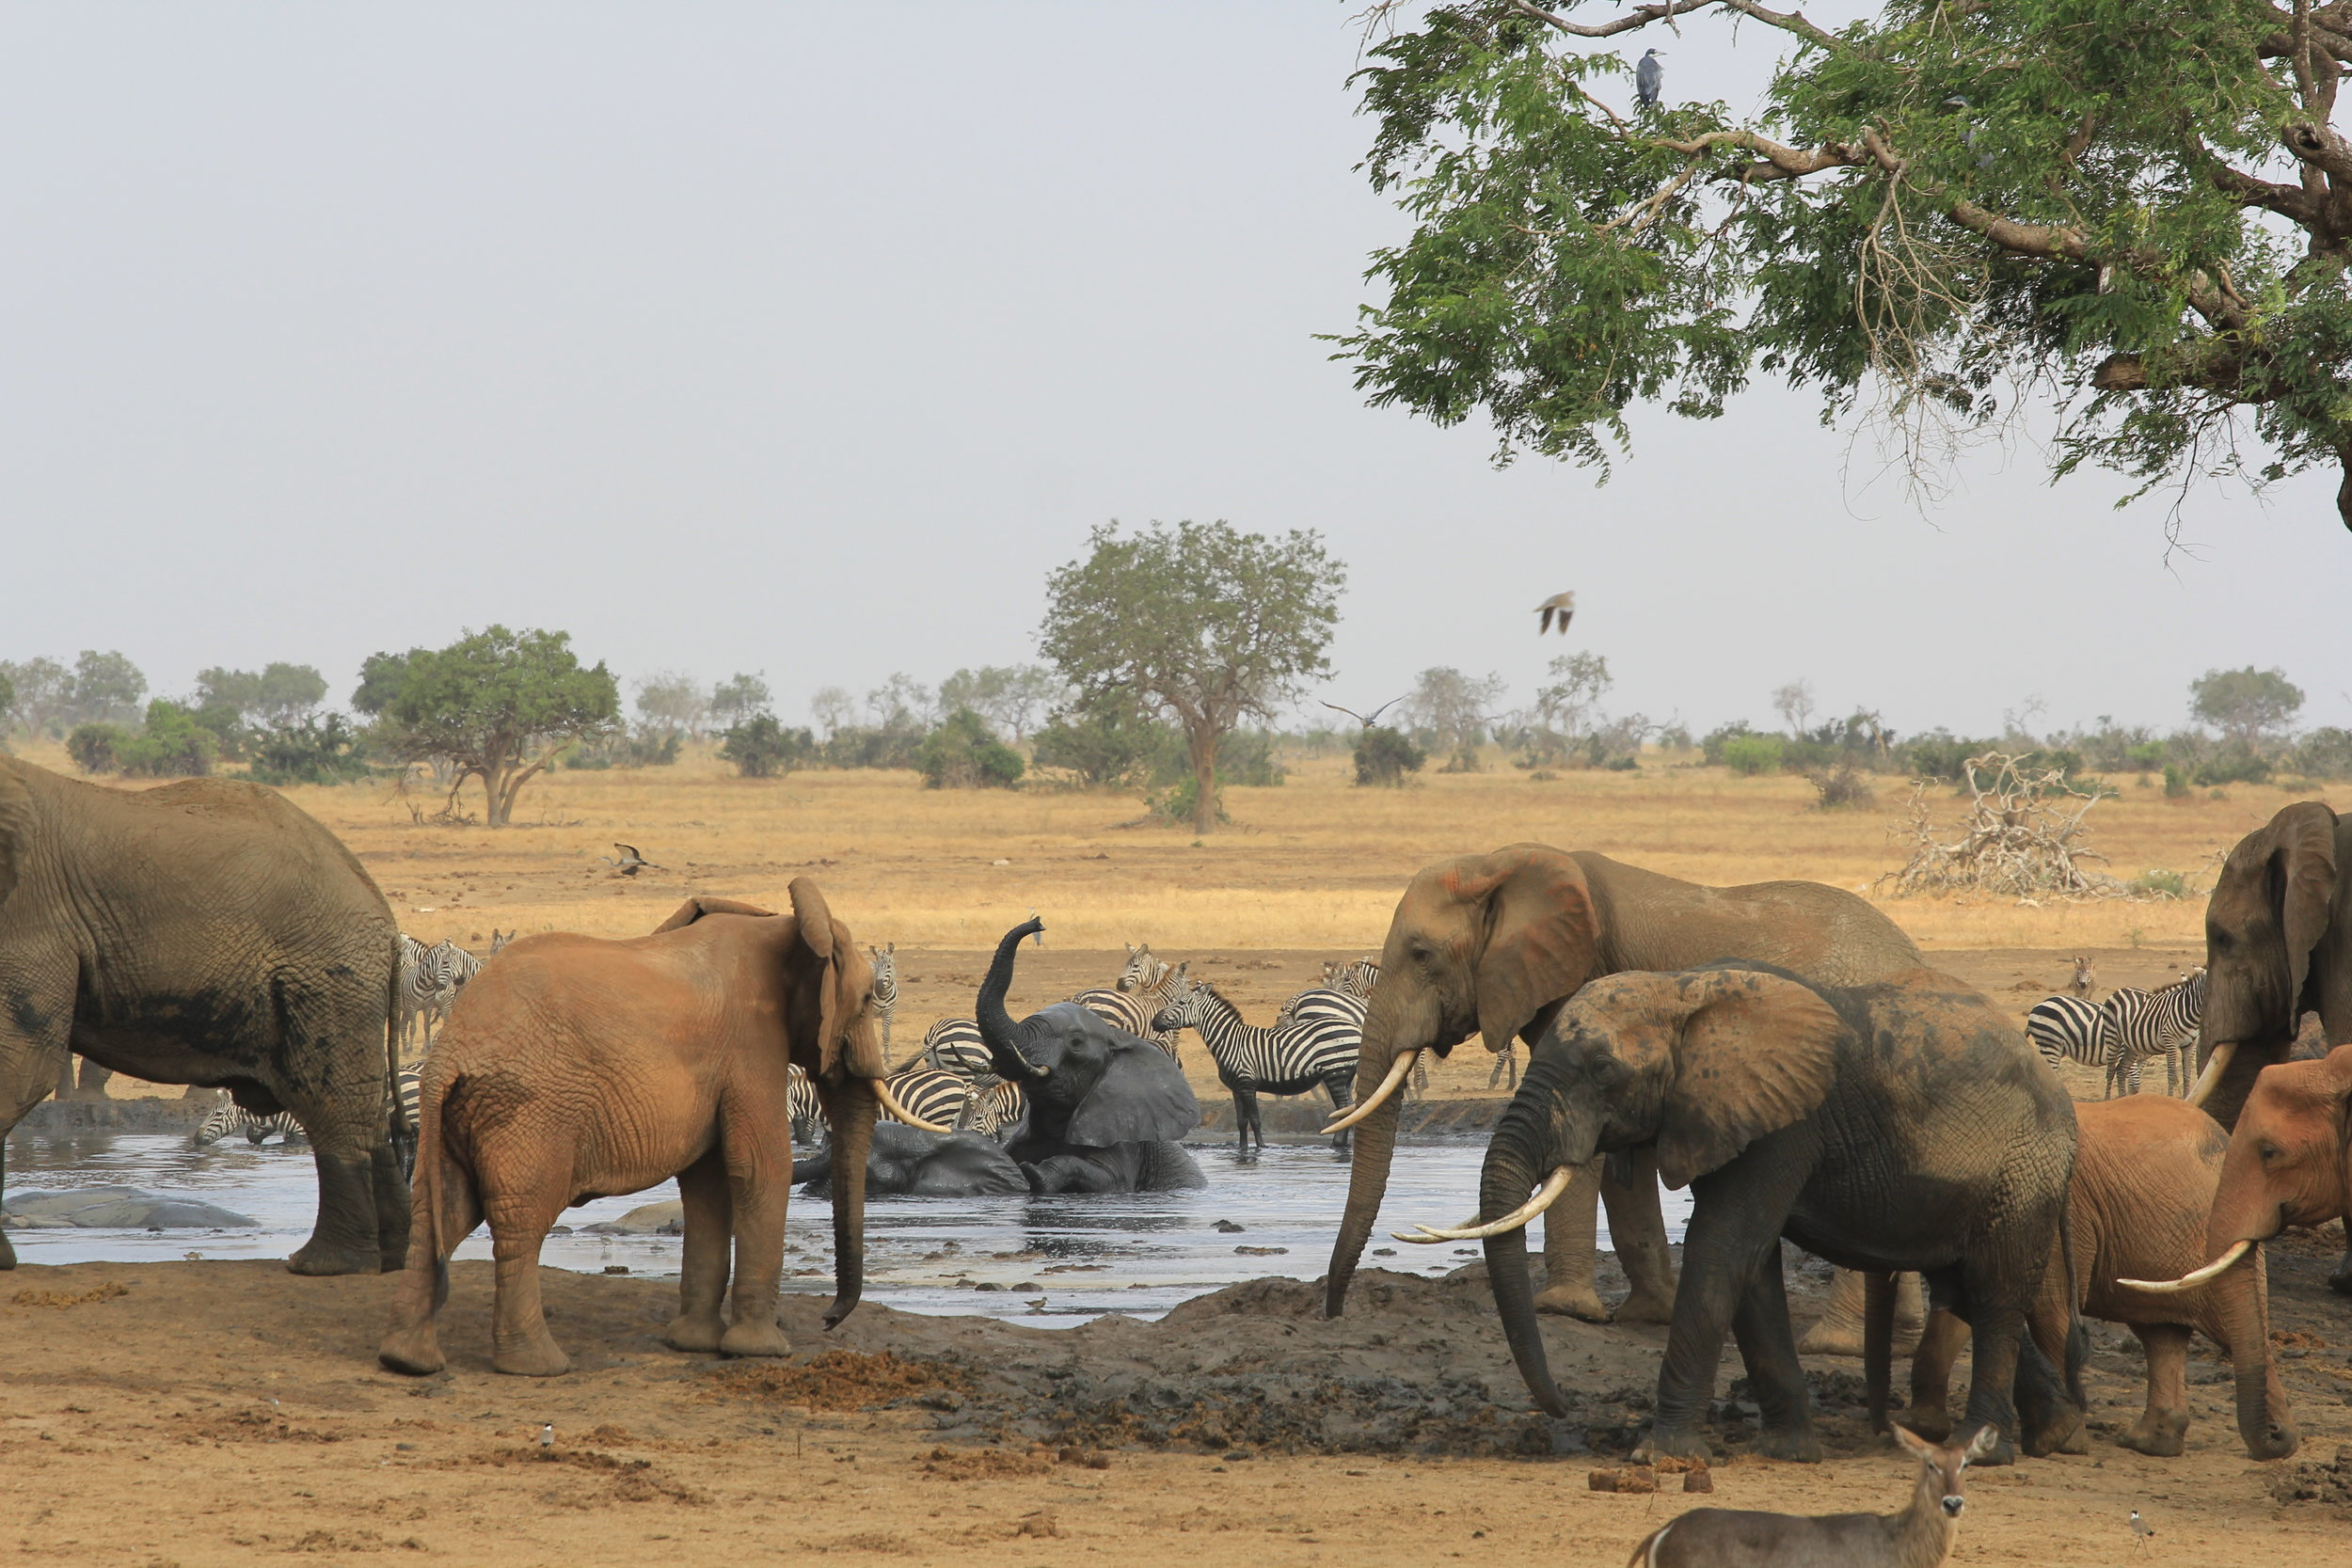 elephants at watering hole in safari